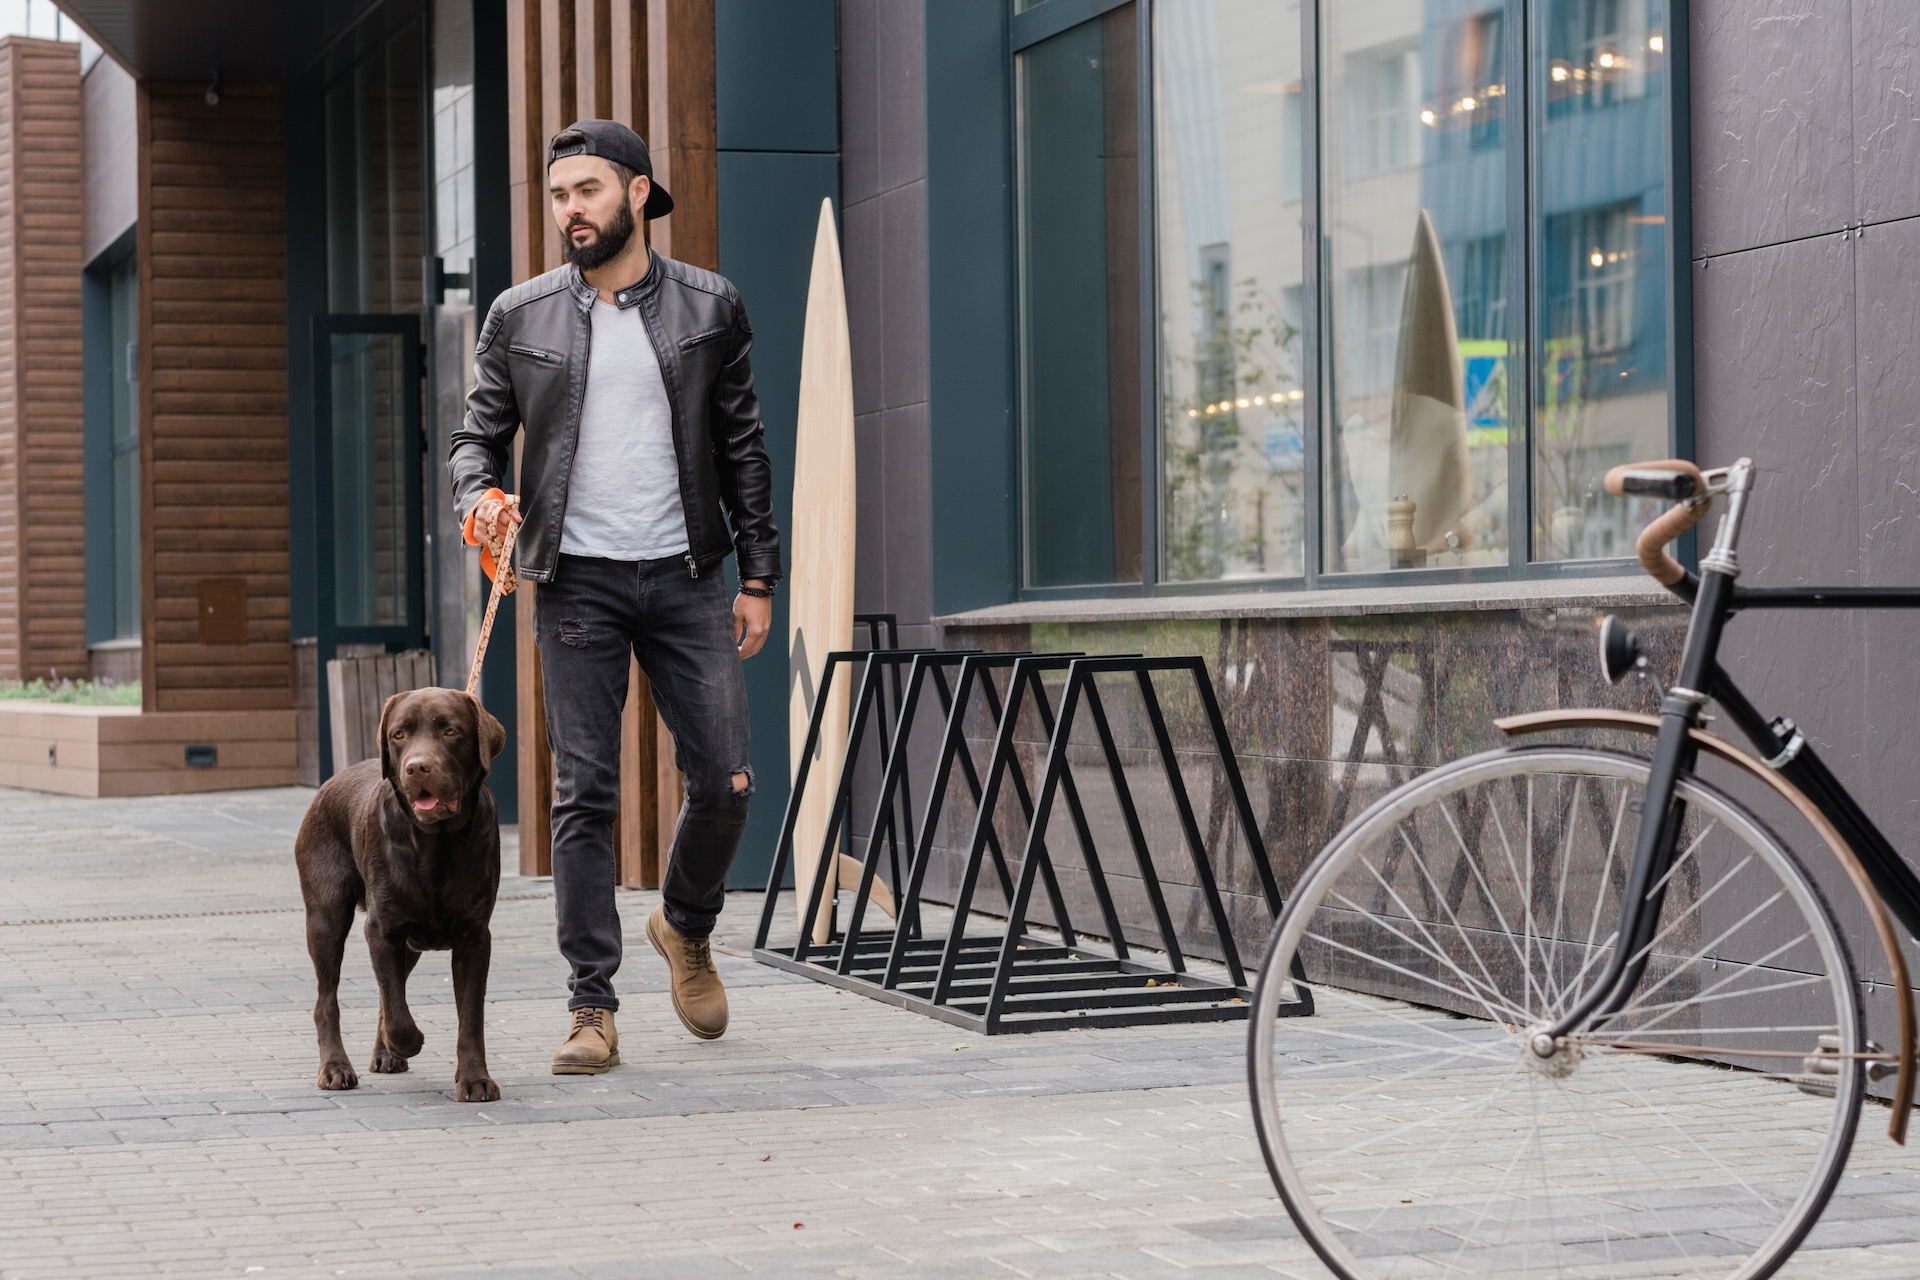 Bearded young man in jeans and leather jacket moving down street of the city while chilling with purebred dog